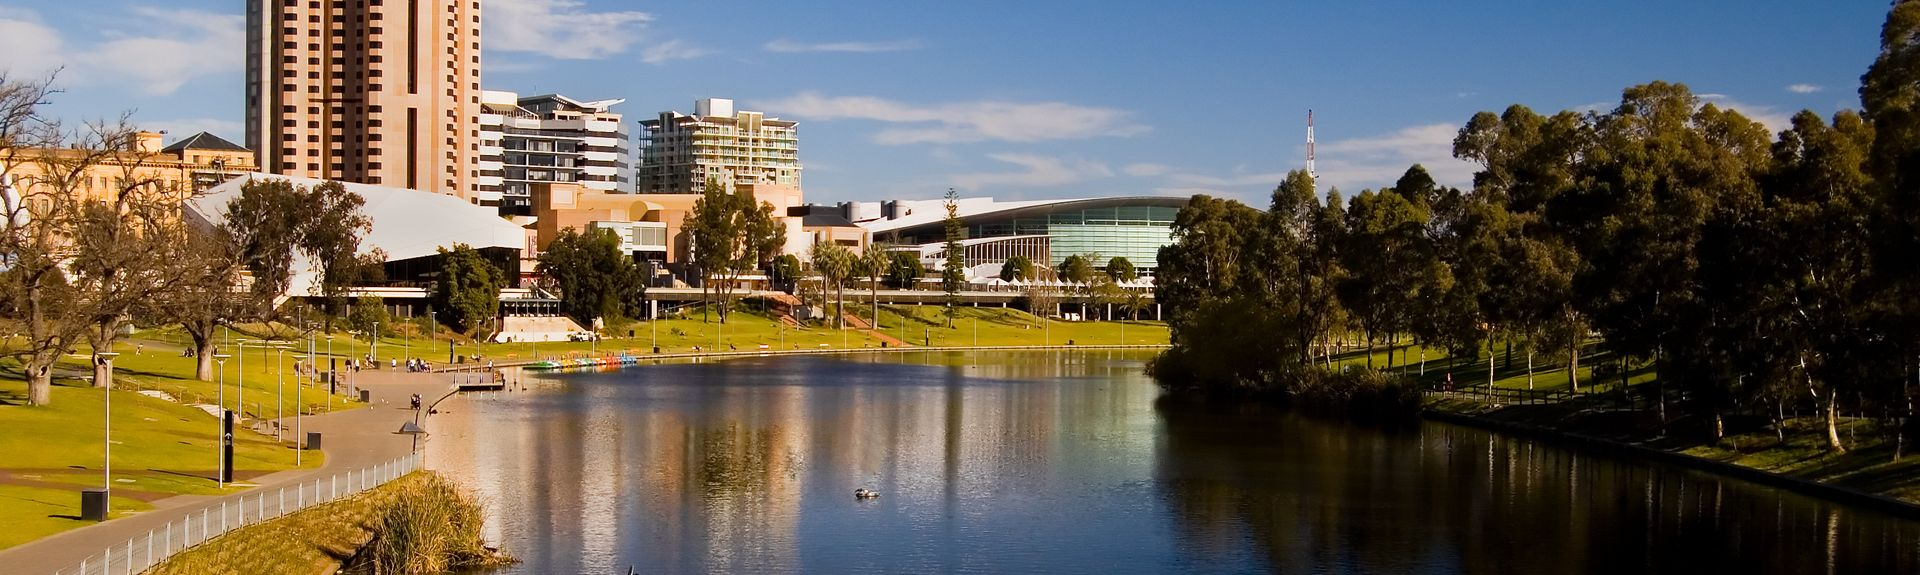 Adelaide, AU Vacation Rentals: condo and apartment rentals ...